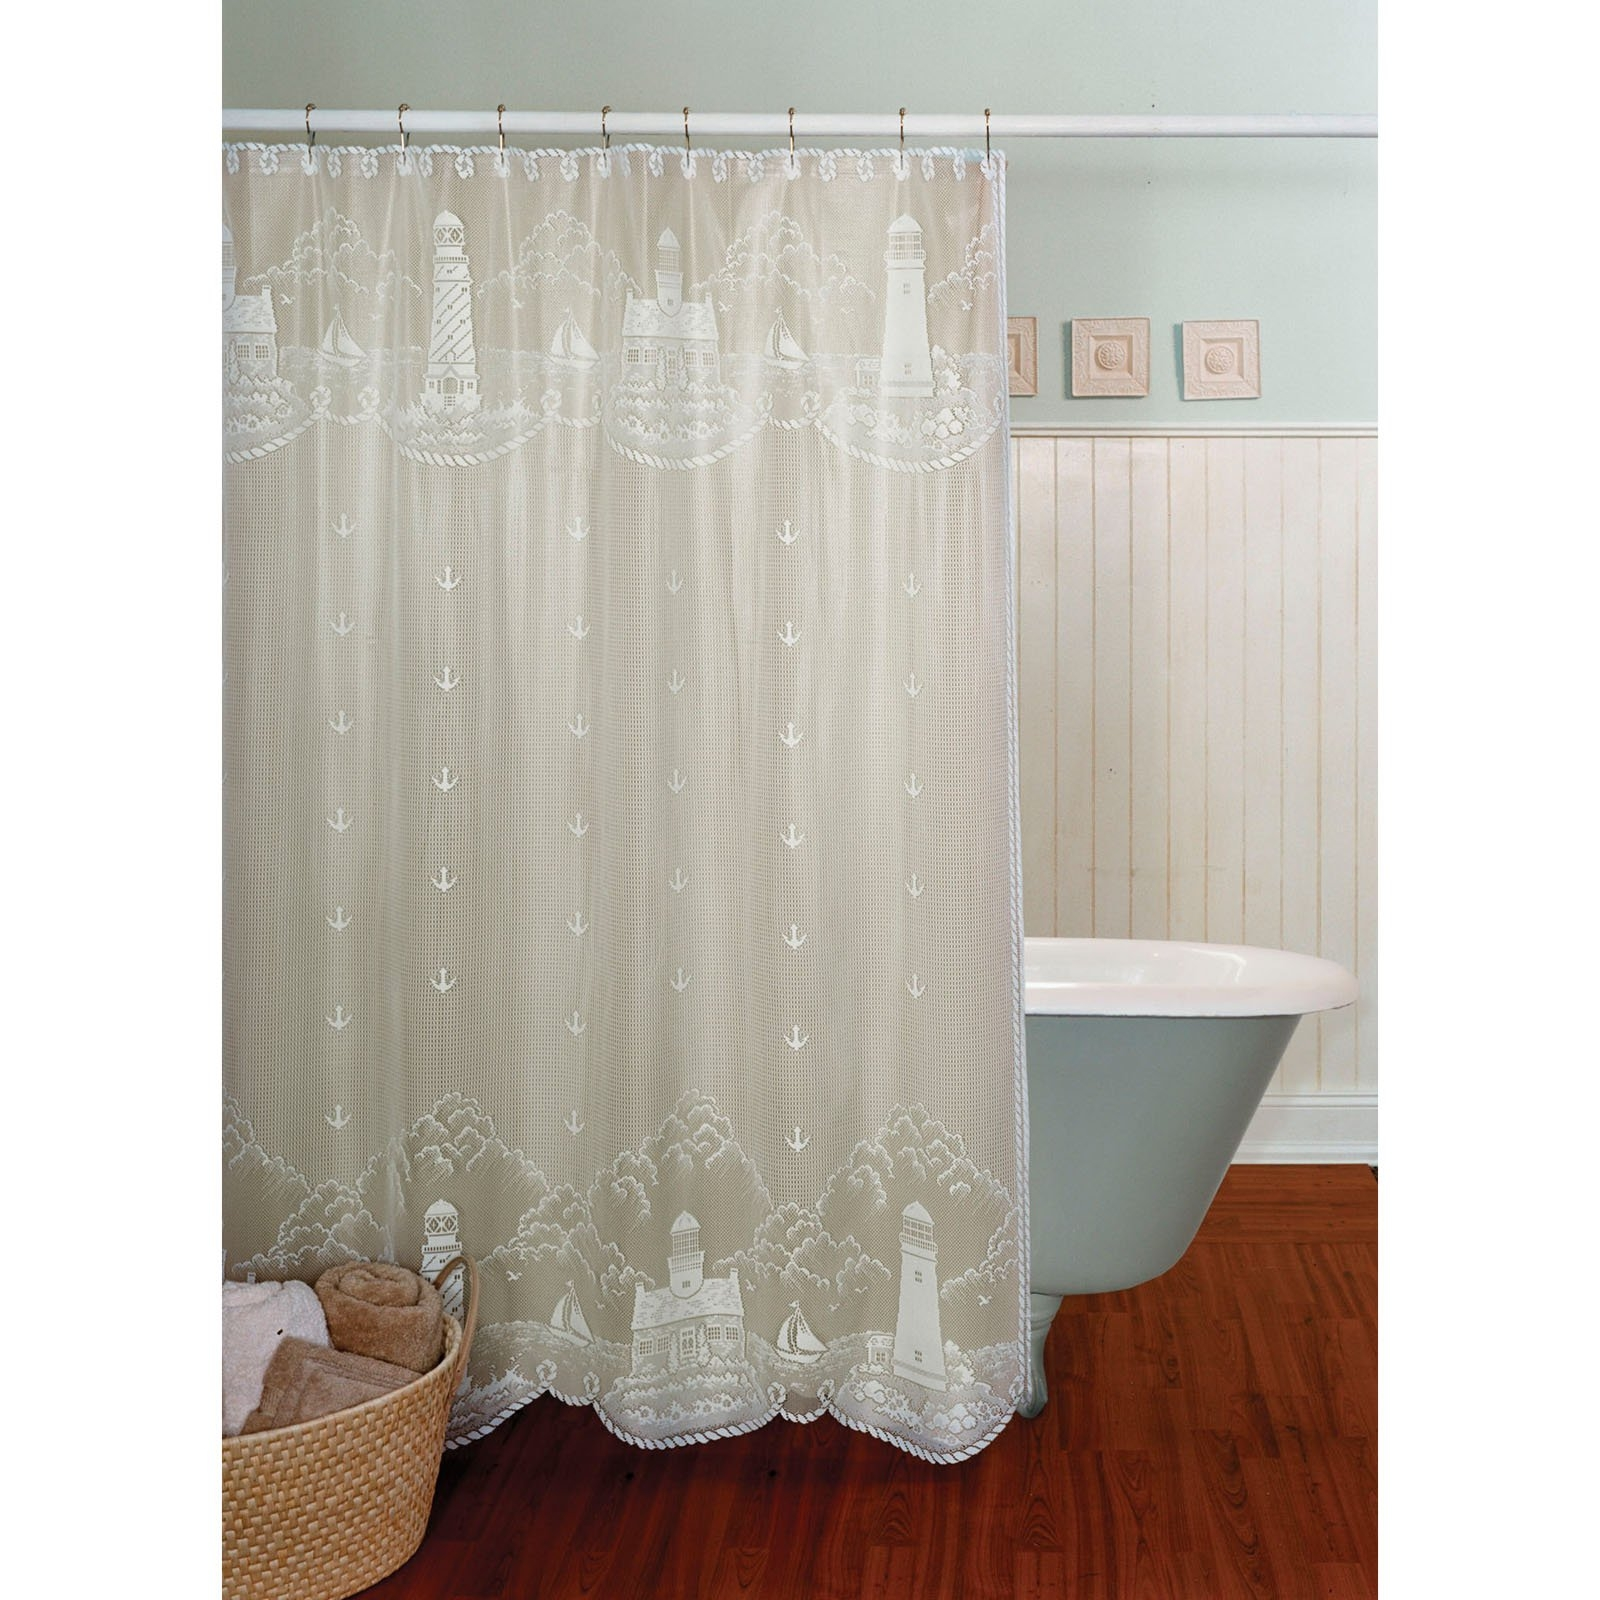 Decorations Cute Bathroom Decor Ideas With Shower Curtains With Inside Lace Curtain Sets (View 9 of 25)